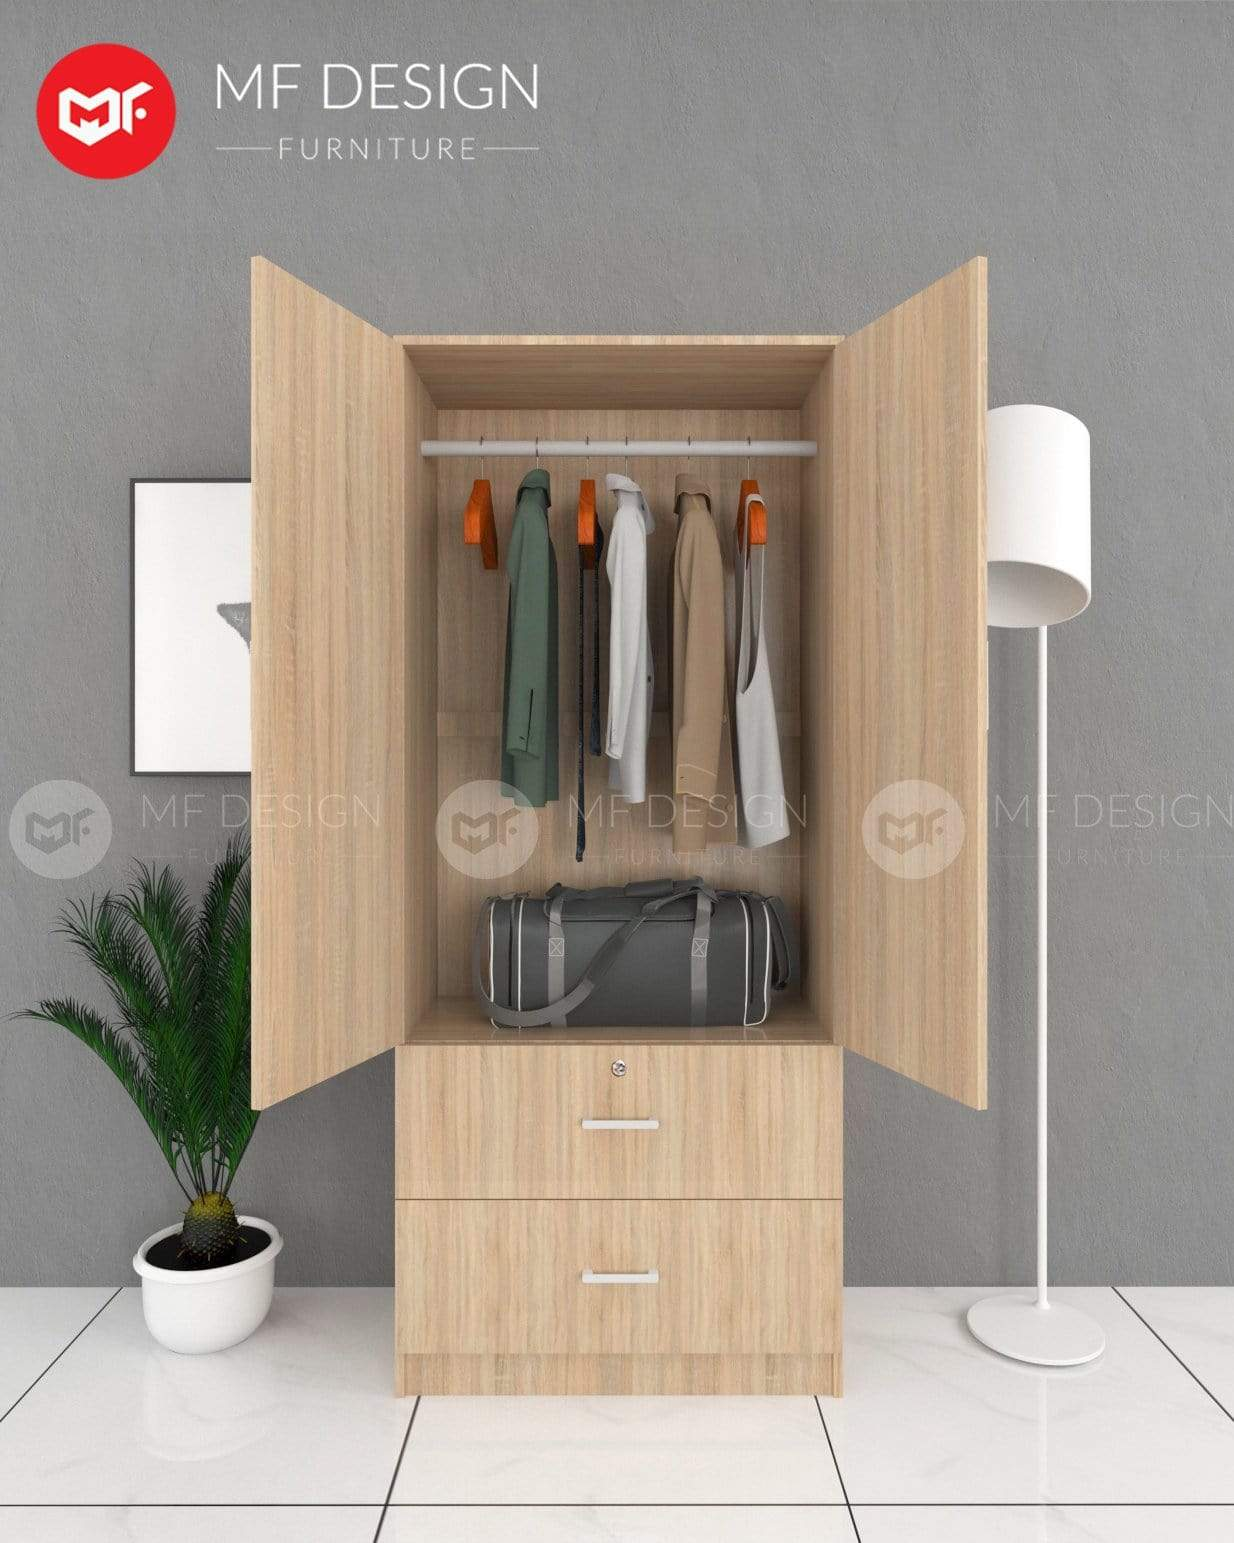 52 wardrobe MF DESIGN DORI 2 DOOR WARDROBE (ALMARI BAJU KAYU)(NATURAL)